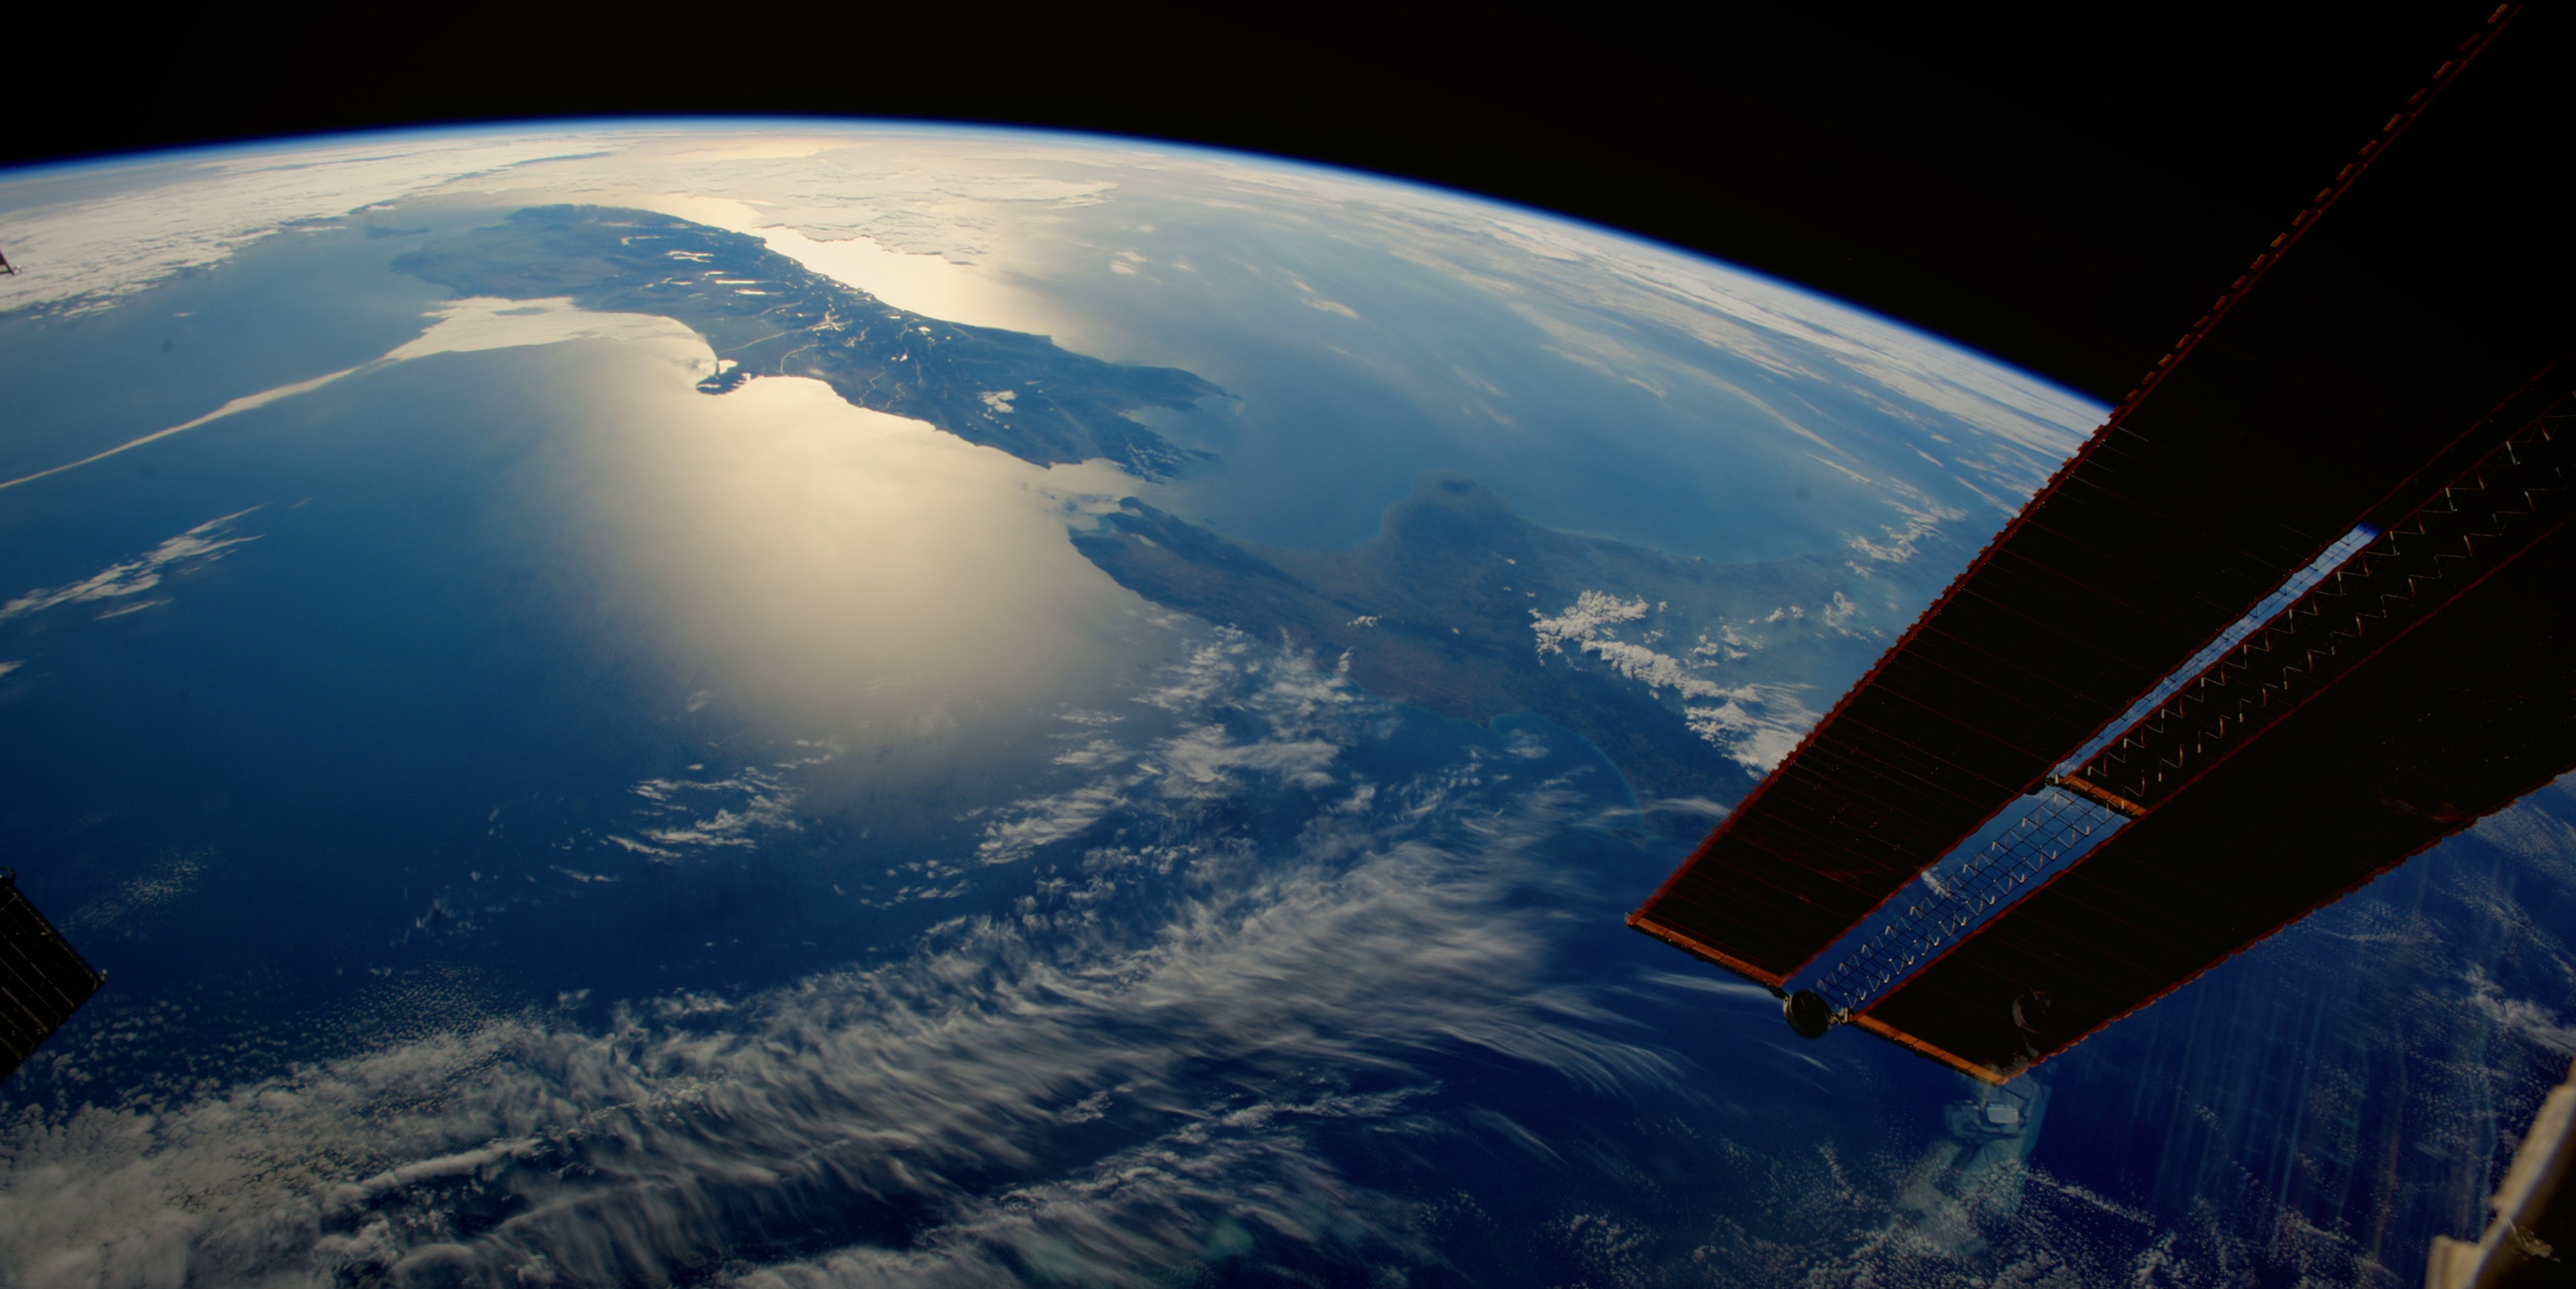 nasa astronauts describe the overview effect in their own words